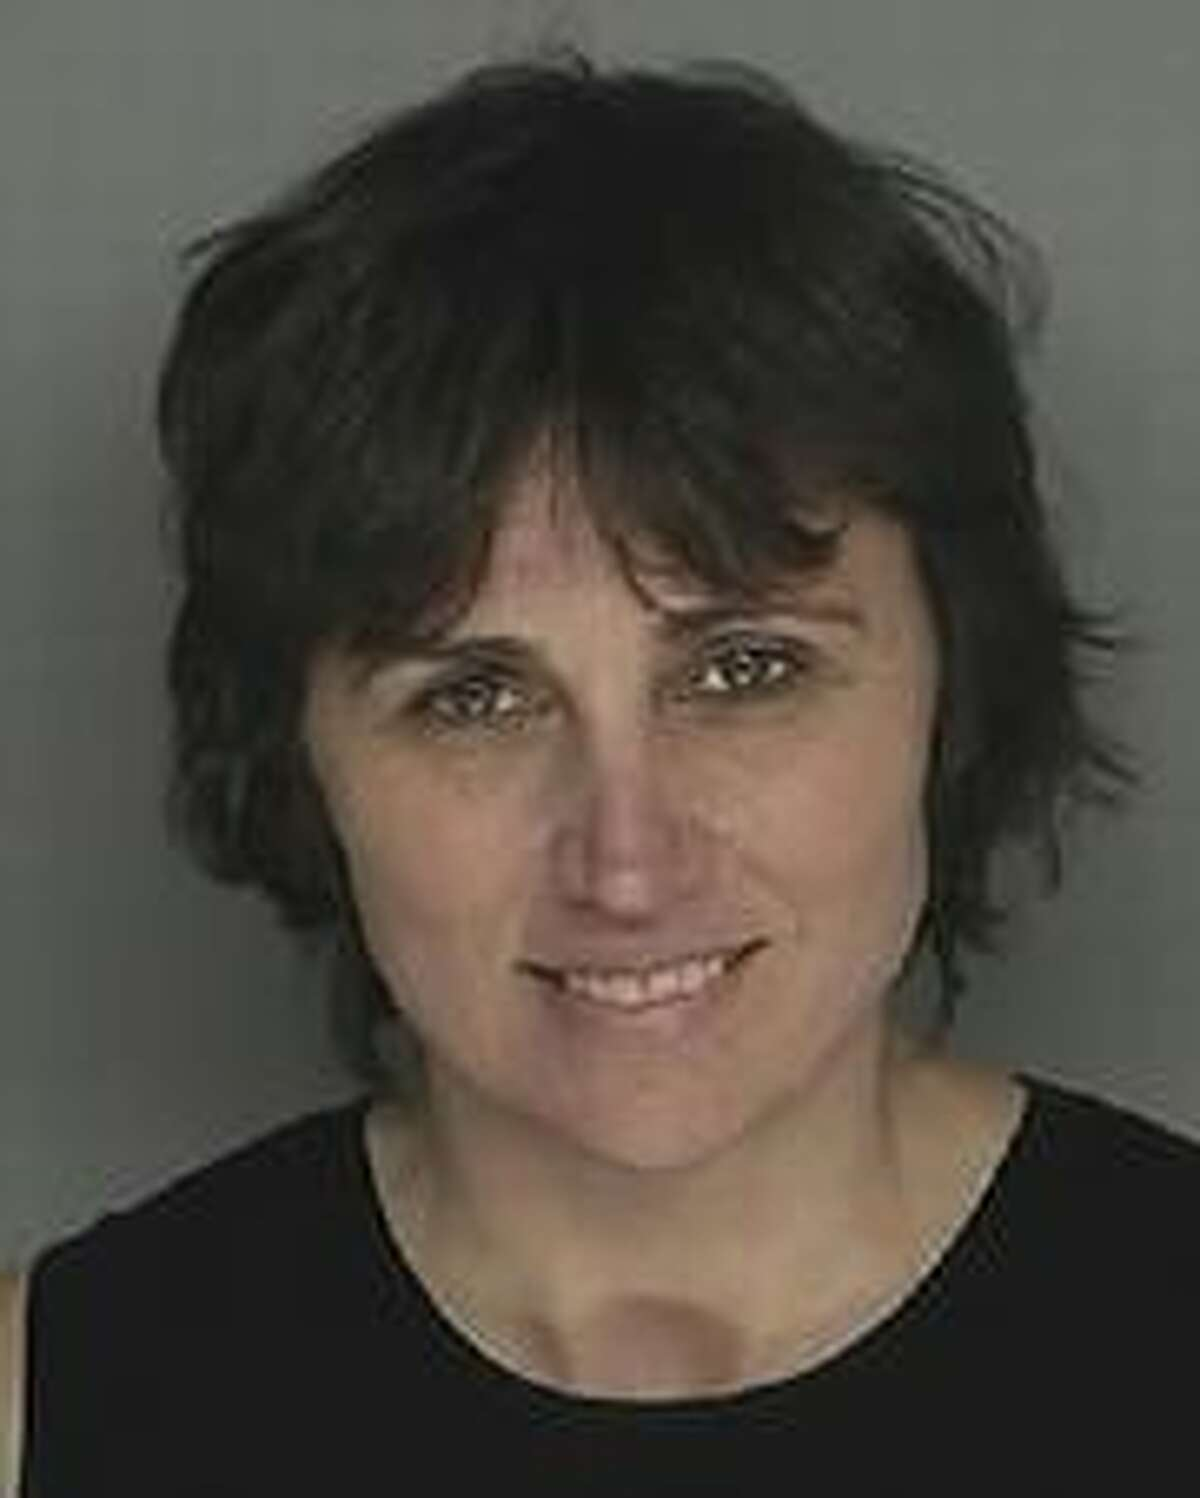 Evi Quaid, Arrested Evi and her husband Randy faced burglary charges when they allegedly squatted in a property they'd previously owned. Several warrants were issued for the couple. They then claimed the